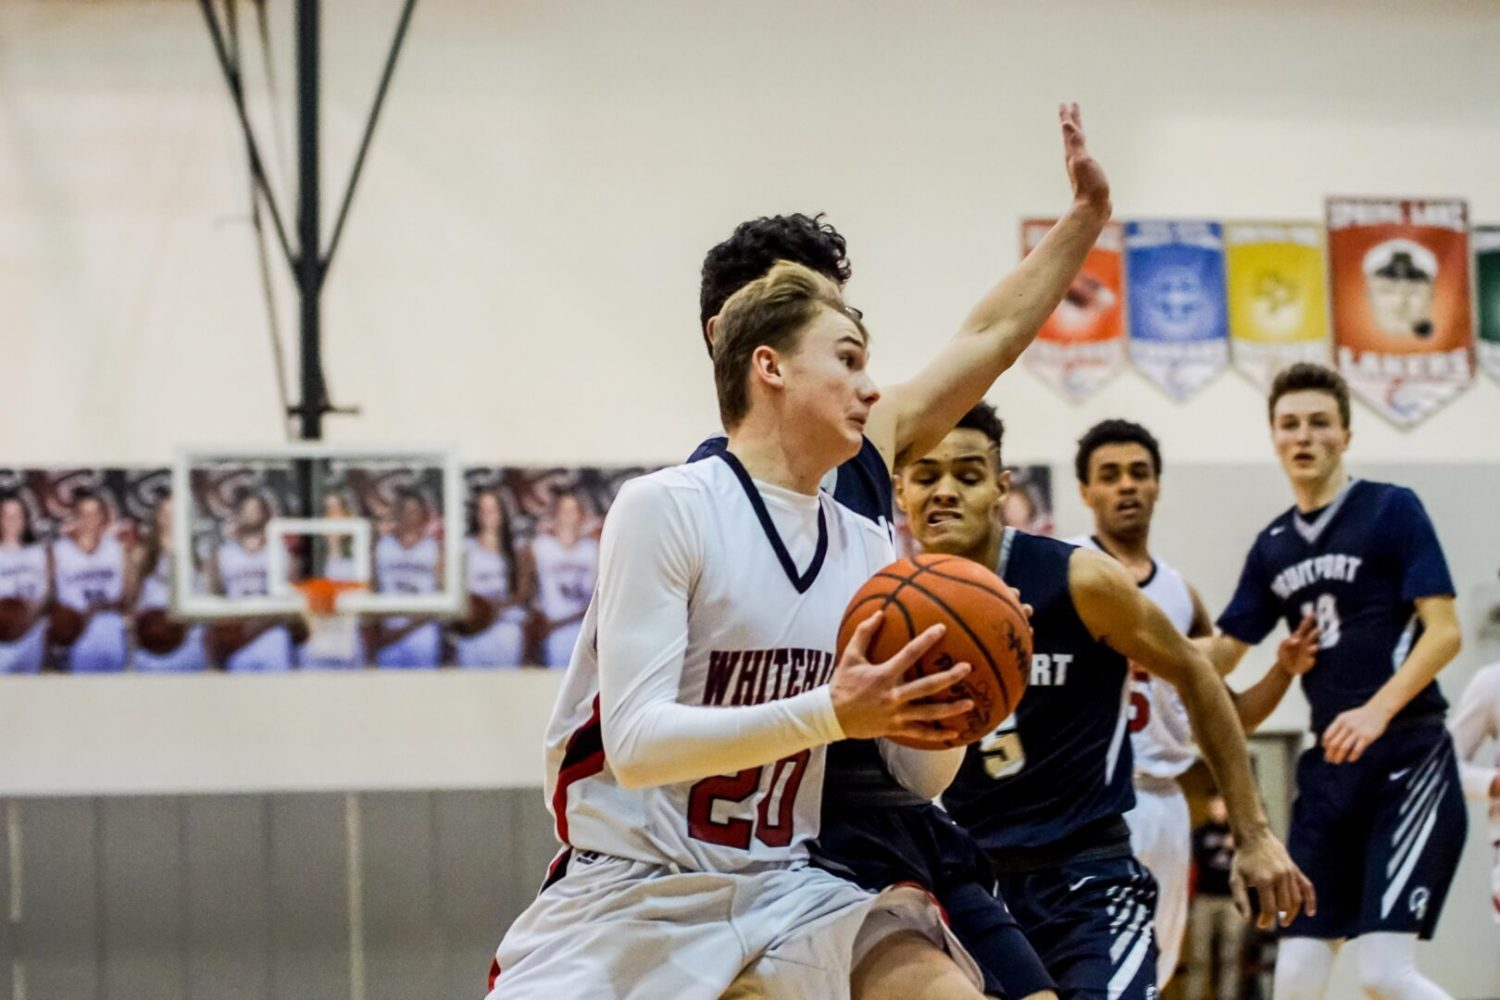 Whitehall boys hold off Fruitport 47-37 in quarterfinal round of Class B districts